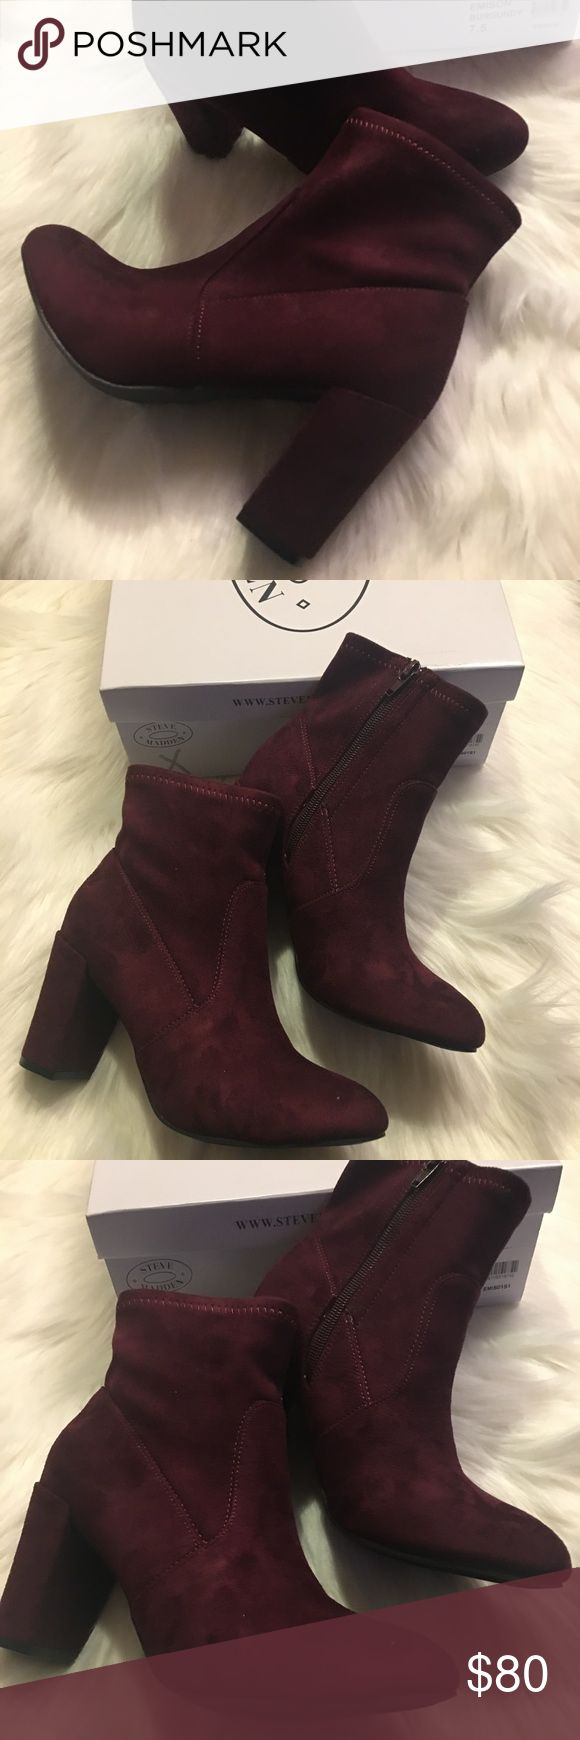 🌼🎁🎀🎀Steve Madden Booties 7.5 Brand New! Comes with the box. Size 7.5 Steve Madden Shoes Ankle Boots & Booties